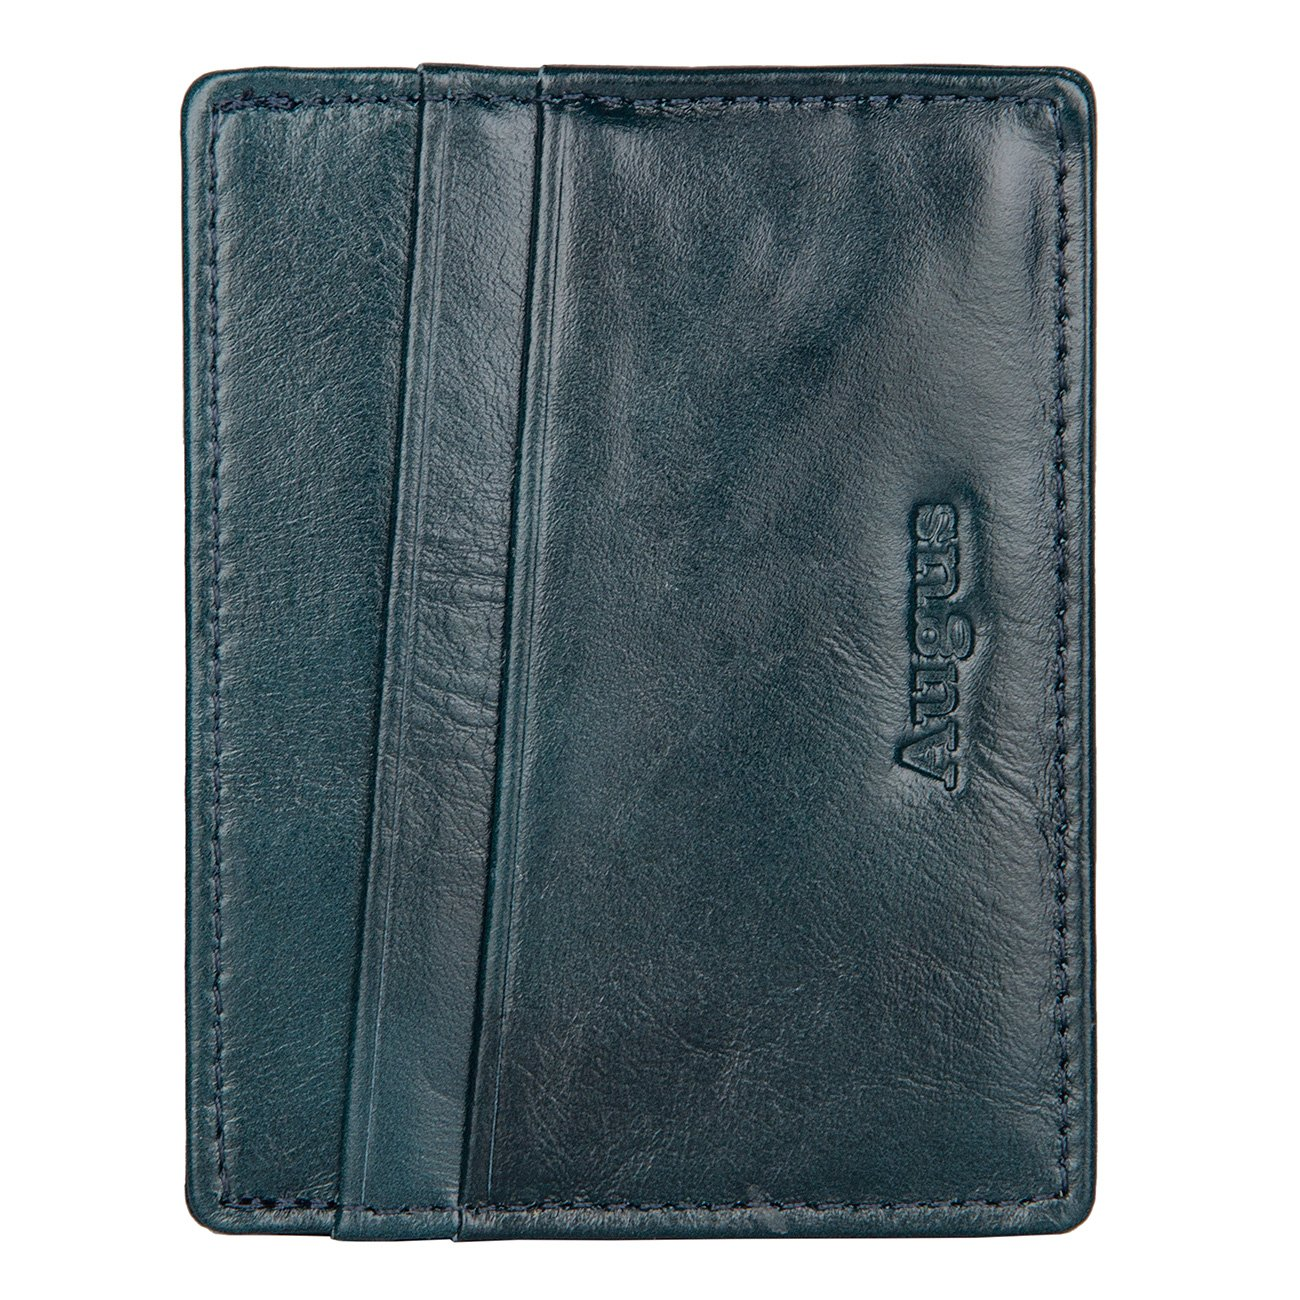 Augus leather Card Holder Front Pocket Wallet with RFID Blocking 3-R-8101A-1